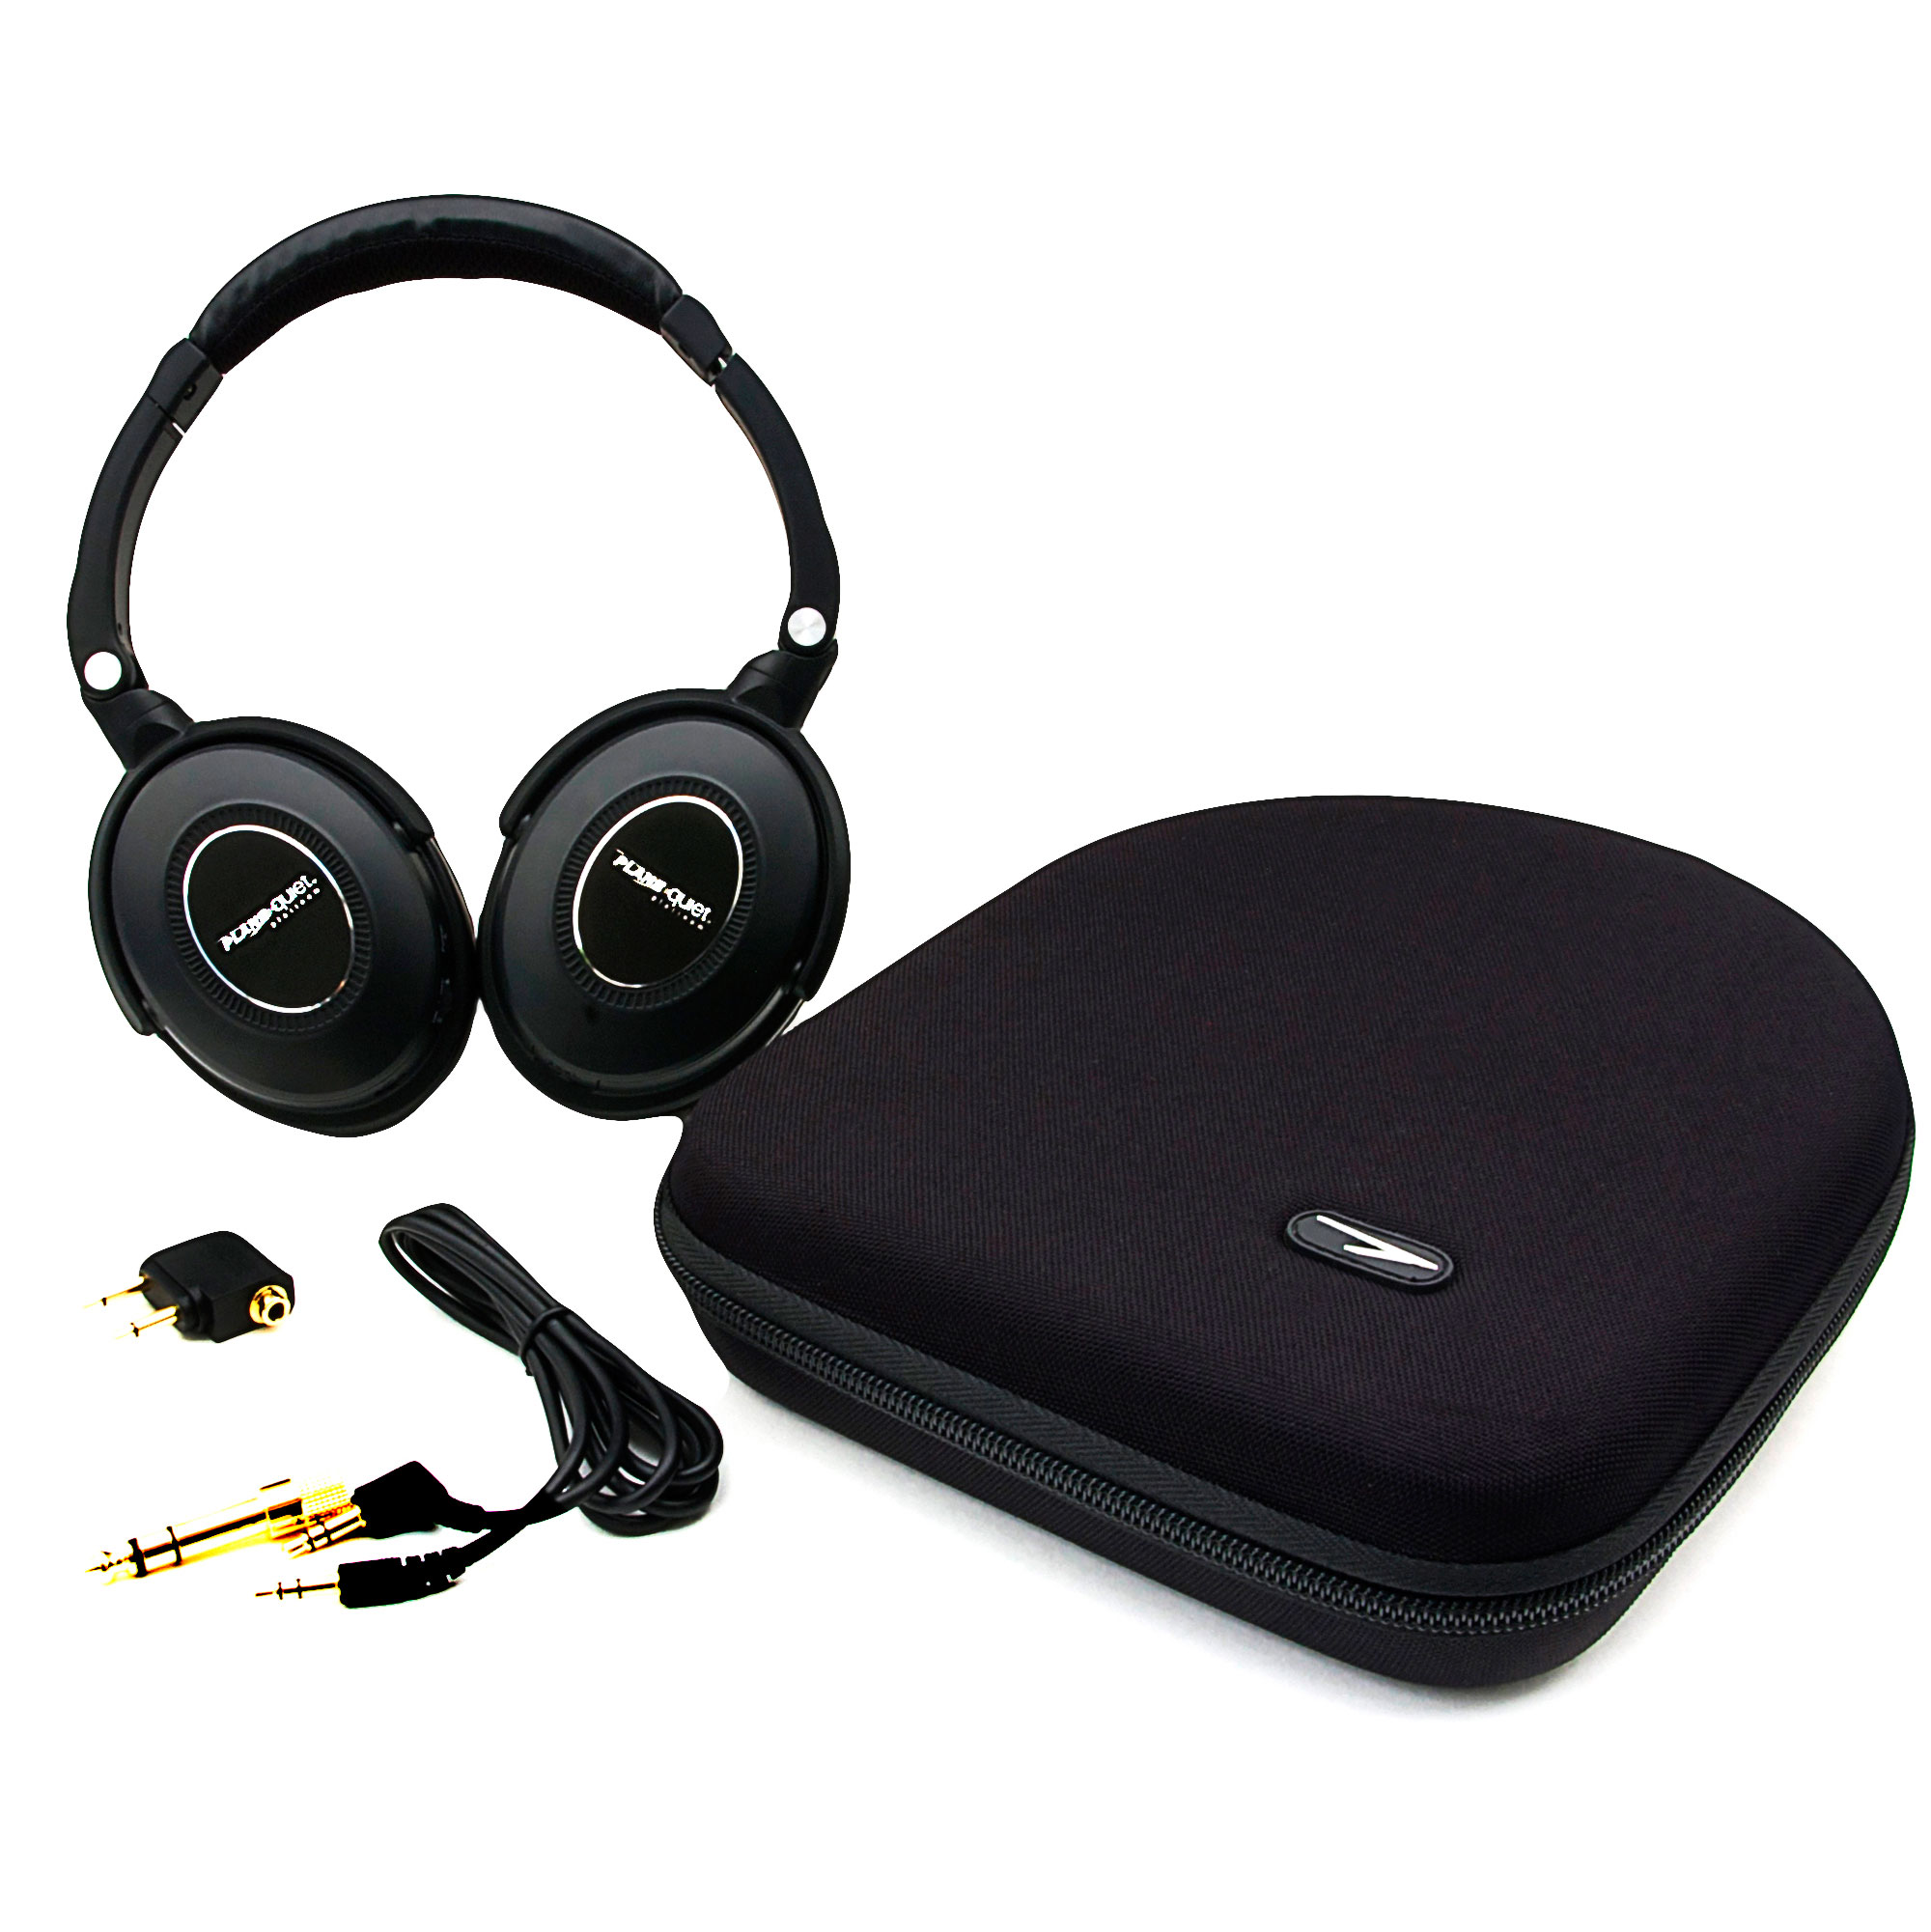 NEW! Solitude Plane Quiet Platinum Over-Ear Noise Cancelling Headphones For Home or Travel - Compatible with IPad, IPhone, Android, MP3, CD, DVD, Computers, and More - 35 Hour Battery Time Wired Black